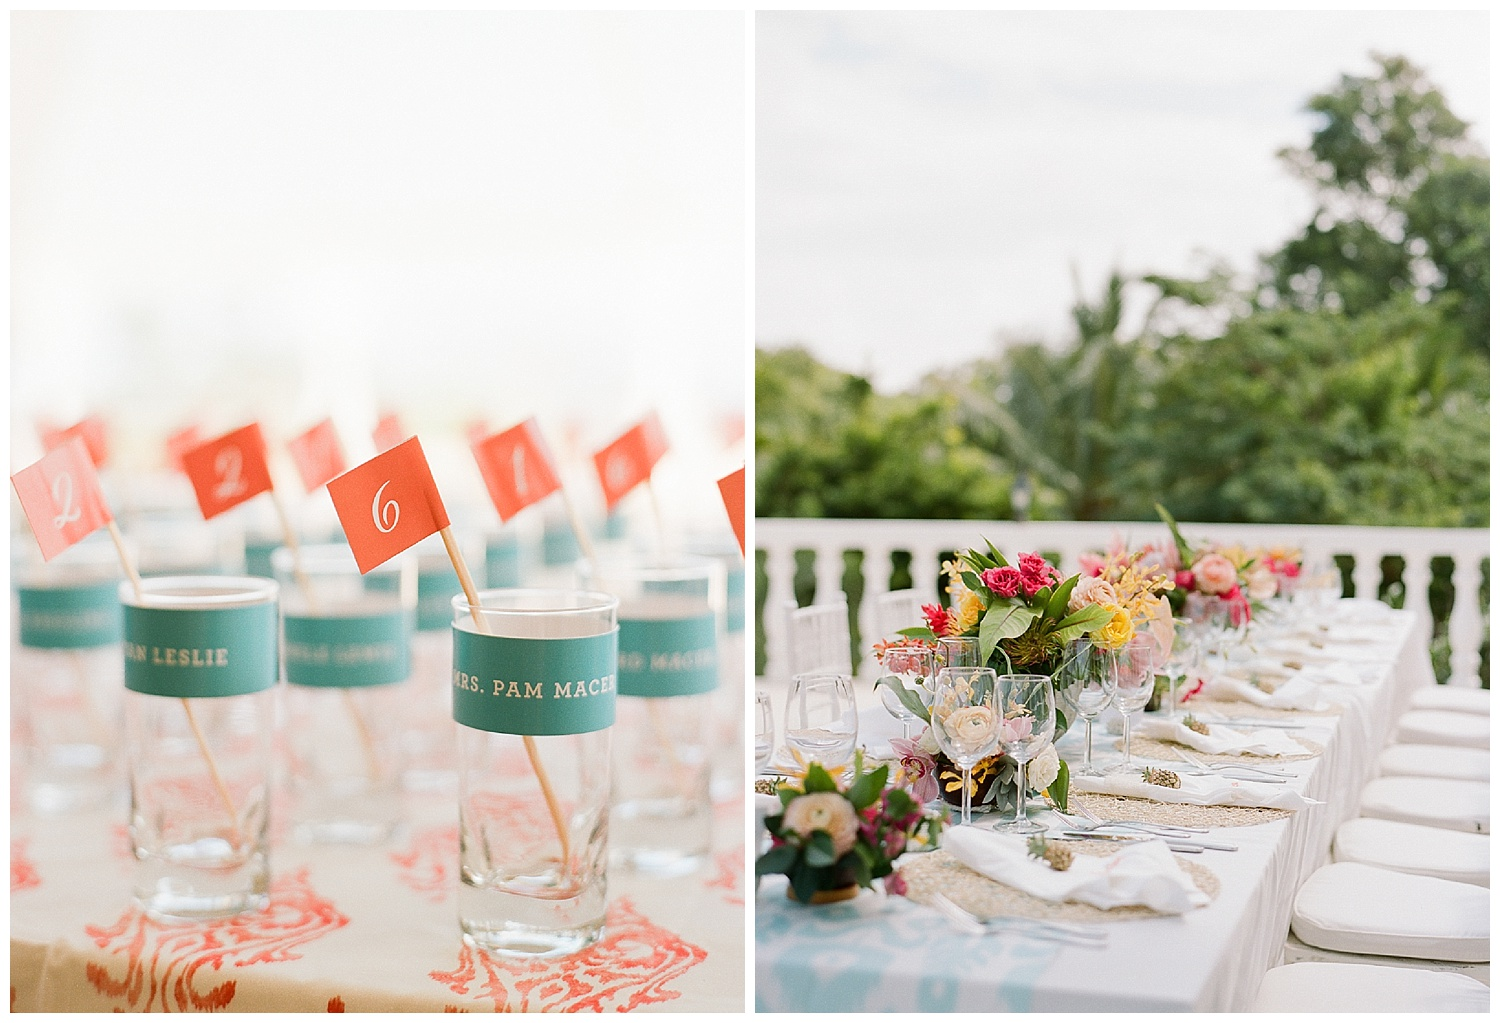 Personalized cocktail glasses, ikat tablecloths, colorful tropical blooms; Sylvie Gil Photography